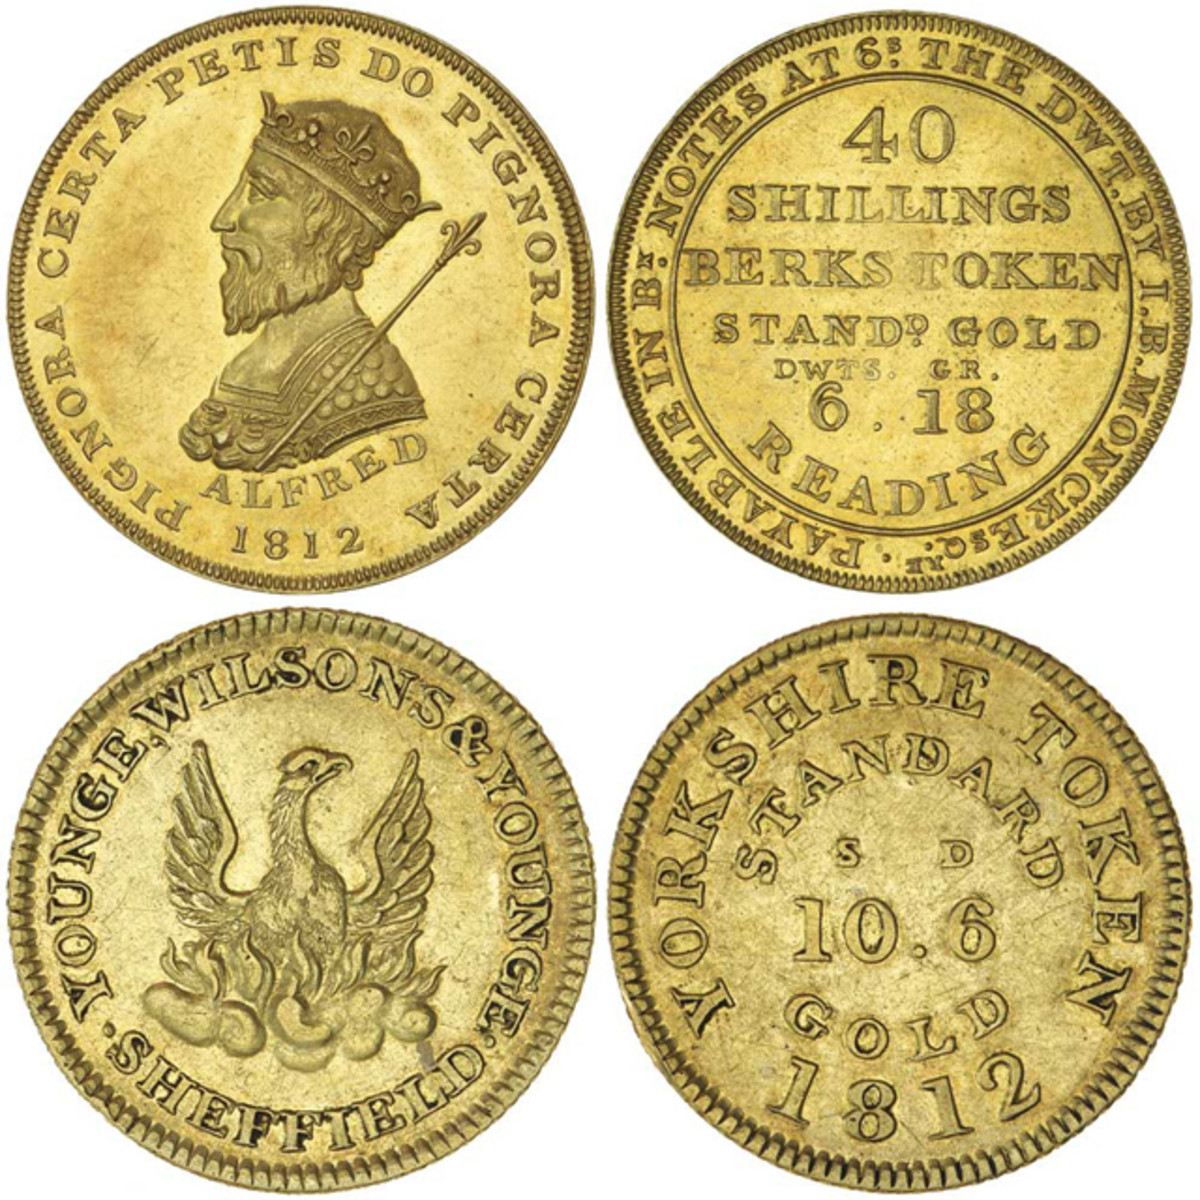 Berkshire forty shillings and Yorkshire ten shillings and sixpence gold tokens of 1812 that sold in Sydney in April for $12,605 and $5,402 respectively. Images courtesy Noble Numismatics.